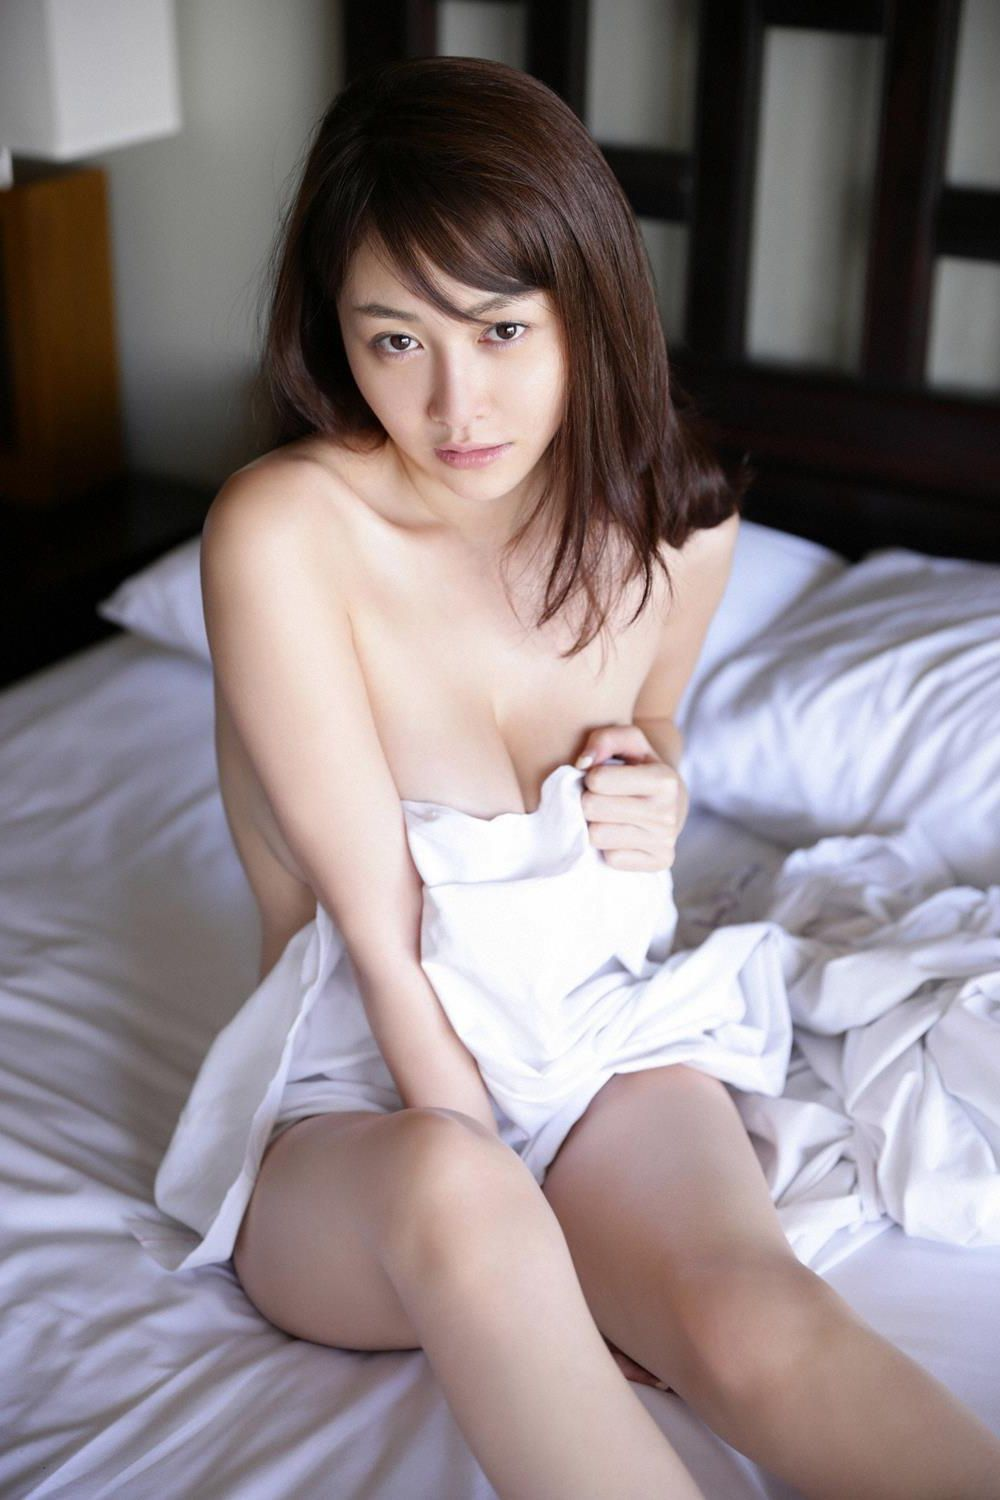 Sideboobs Anri Sugihara nudes (25 foto and video), Sexy, Is a cute, Boobs, cleavage 2020